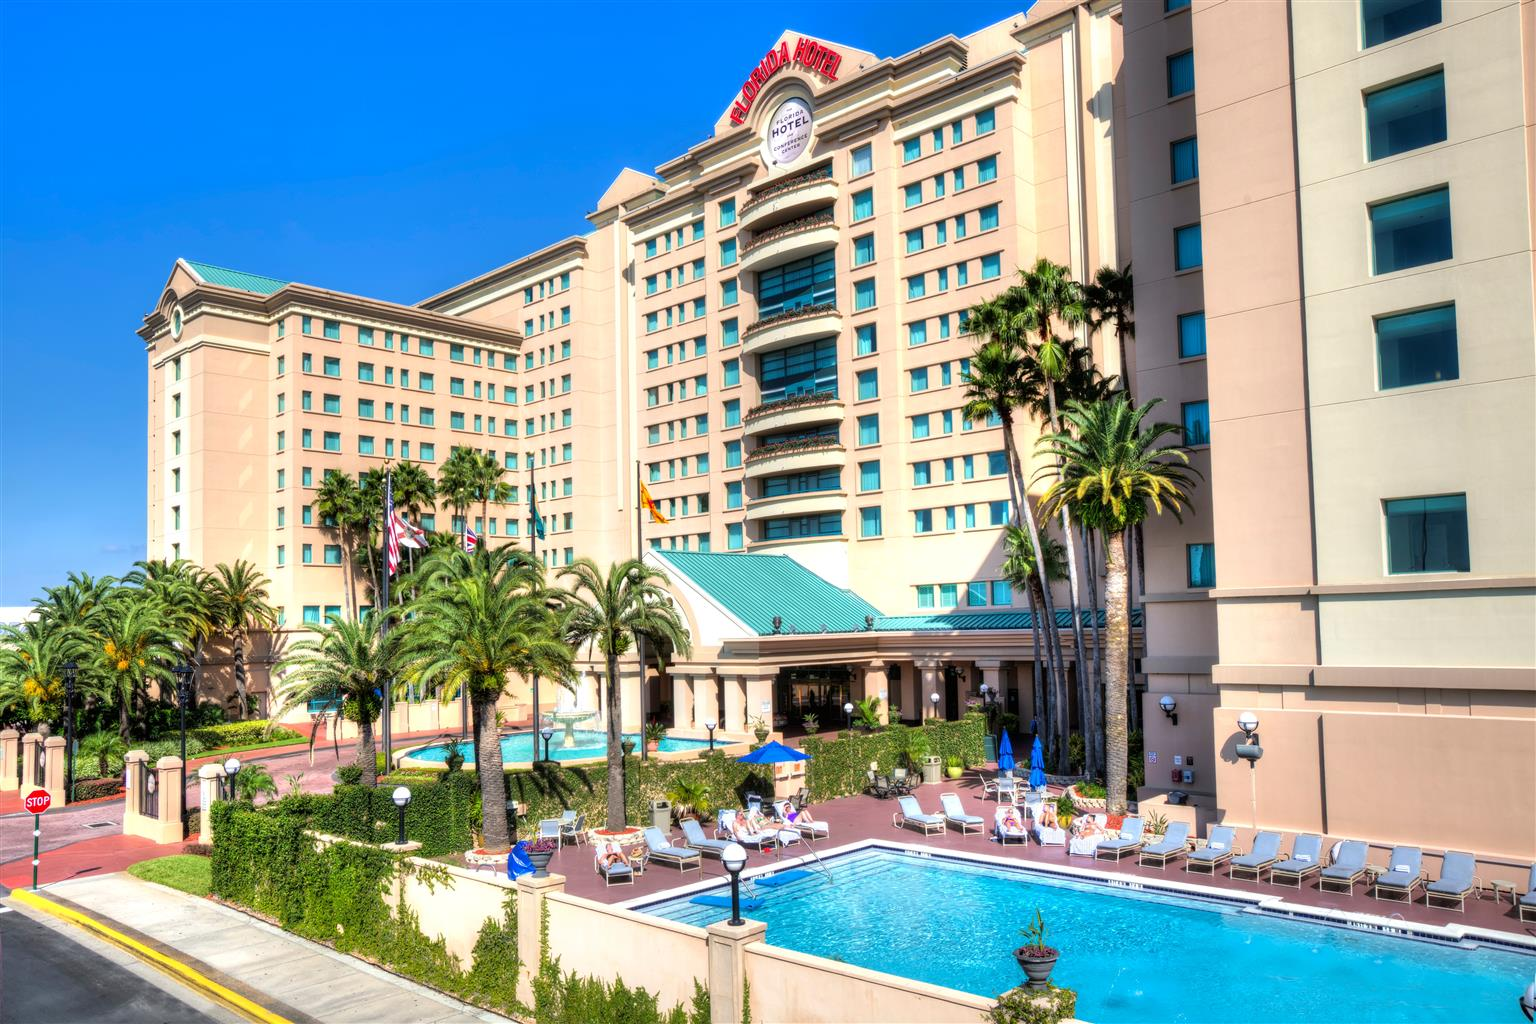 The Florida Hotel Amp Conference Center Bw Premier Collection